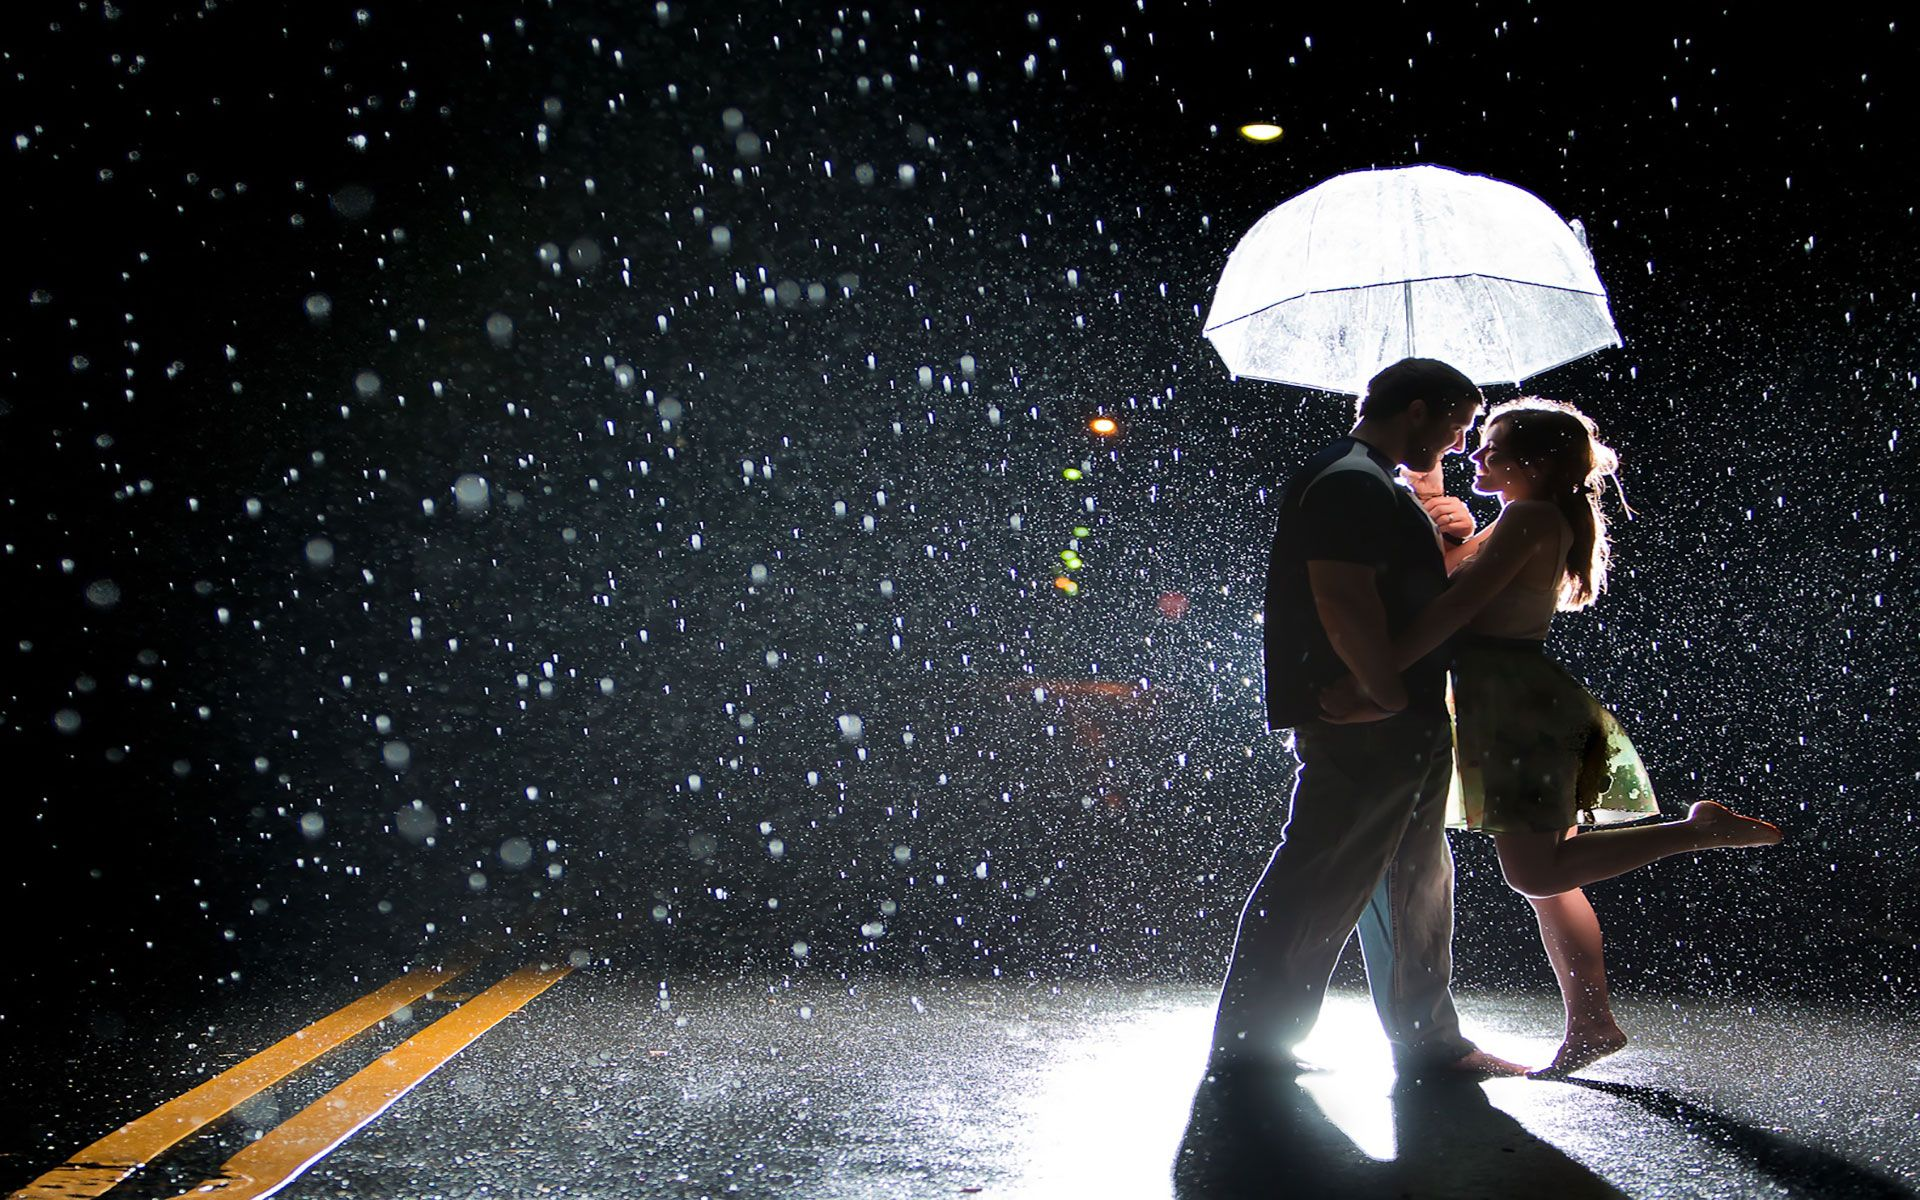 romantic rainy wallpaper - photo #5